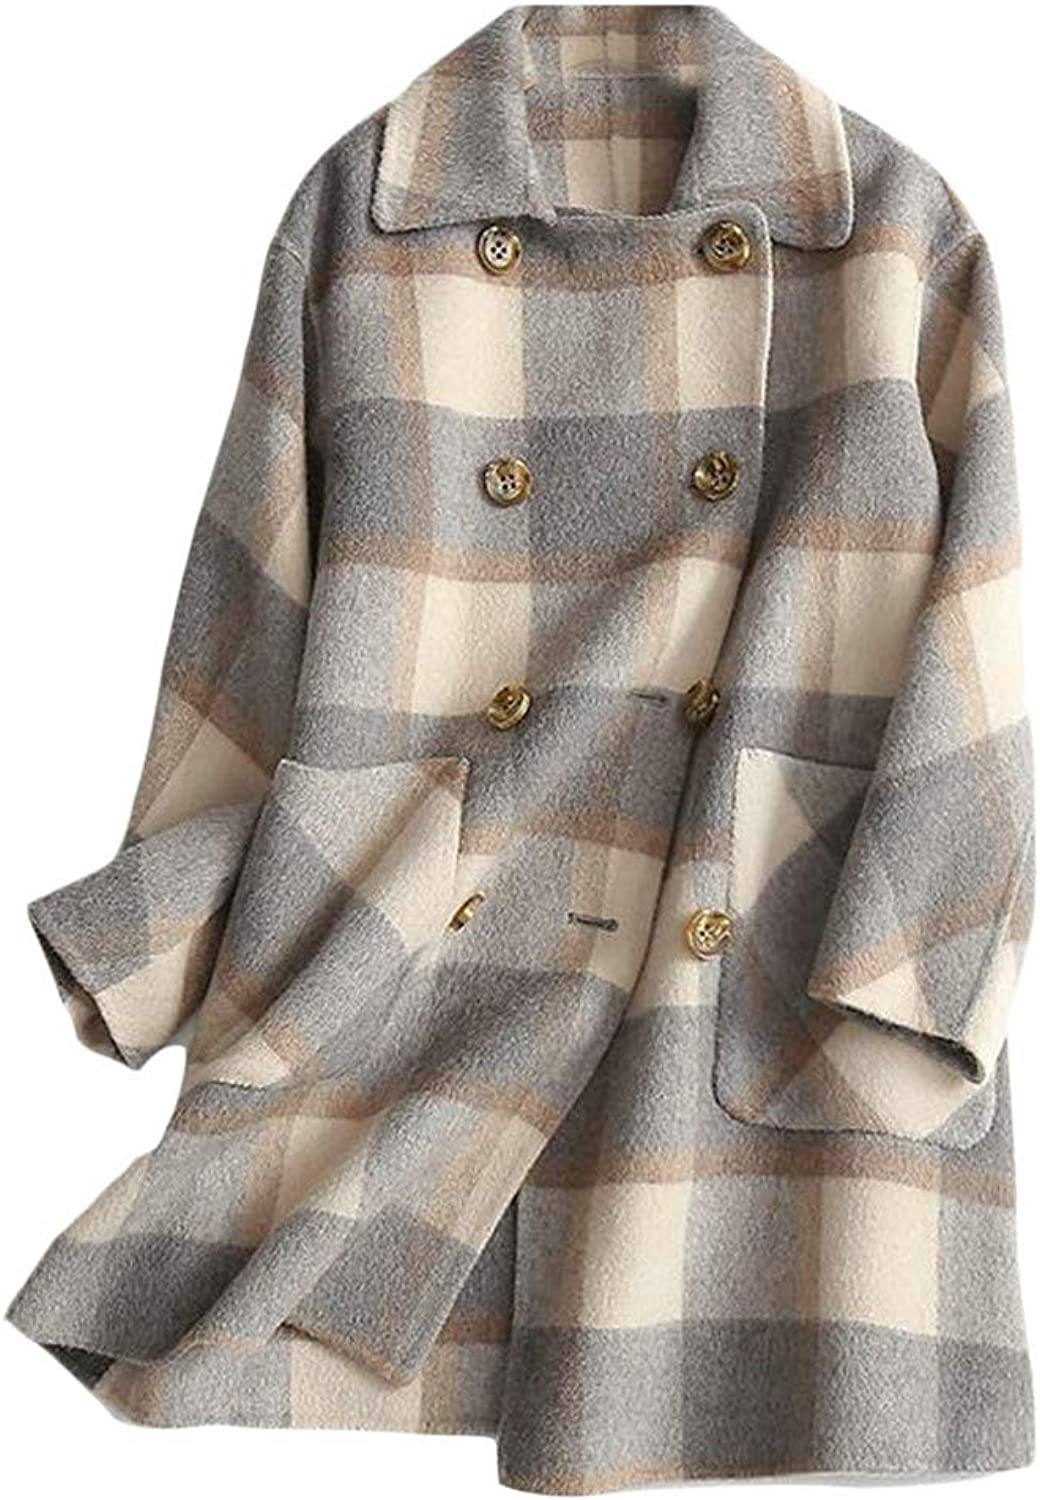 Cromoncent Women Plaid DoubleBreasted Elegant Pocket Overcoat Wool Blend Coat Jacket